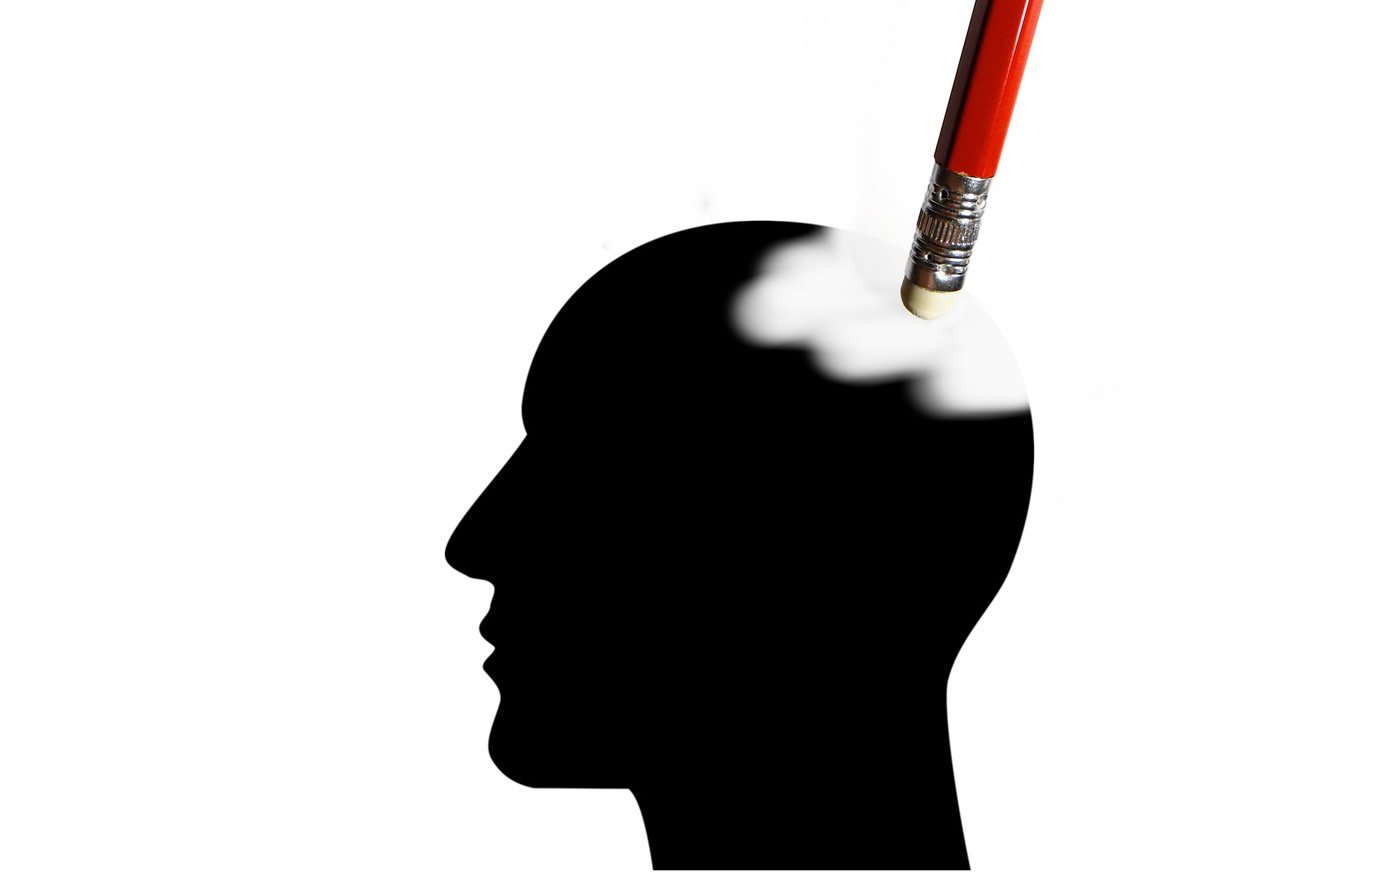 This shows a head with a pencil erasing it